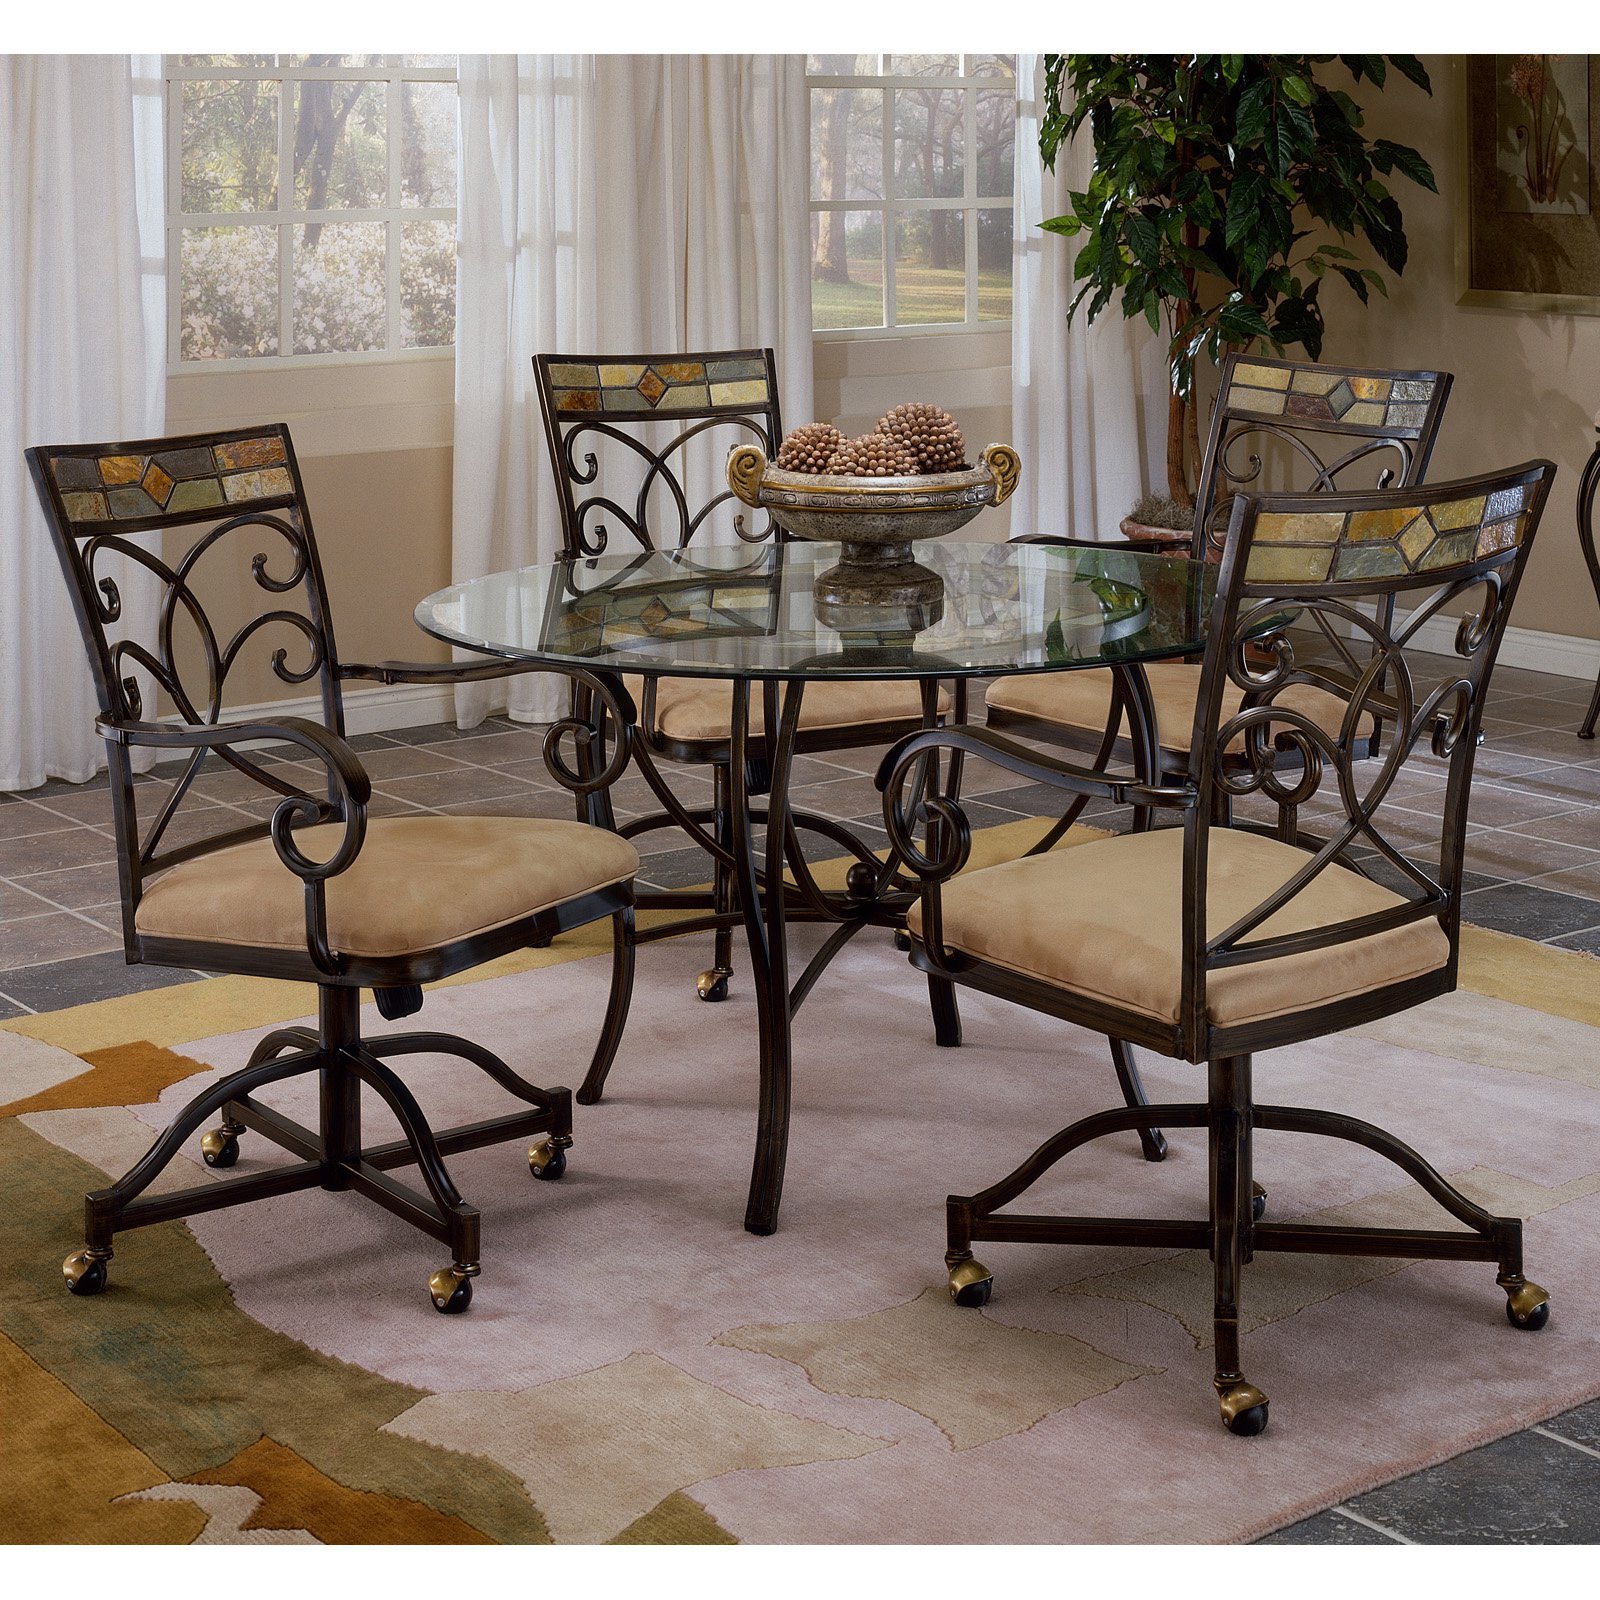 Hillsdsale Pompeii Caster Dining Chair, Set Of 2